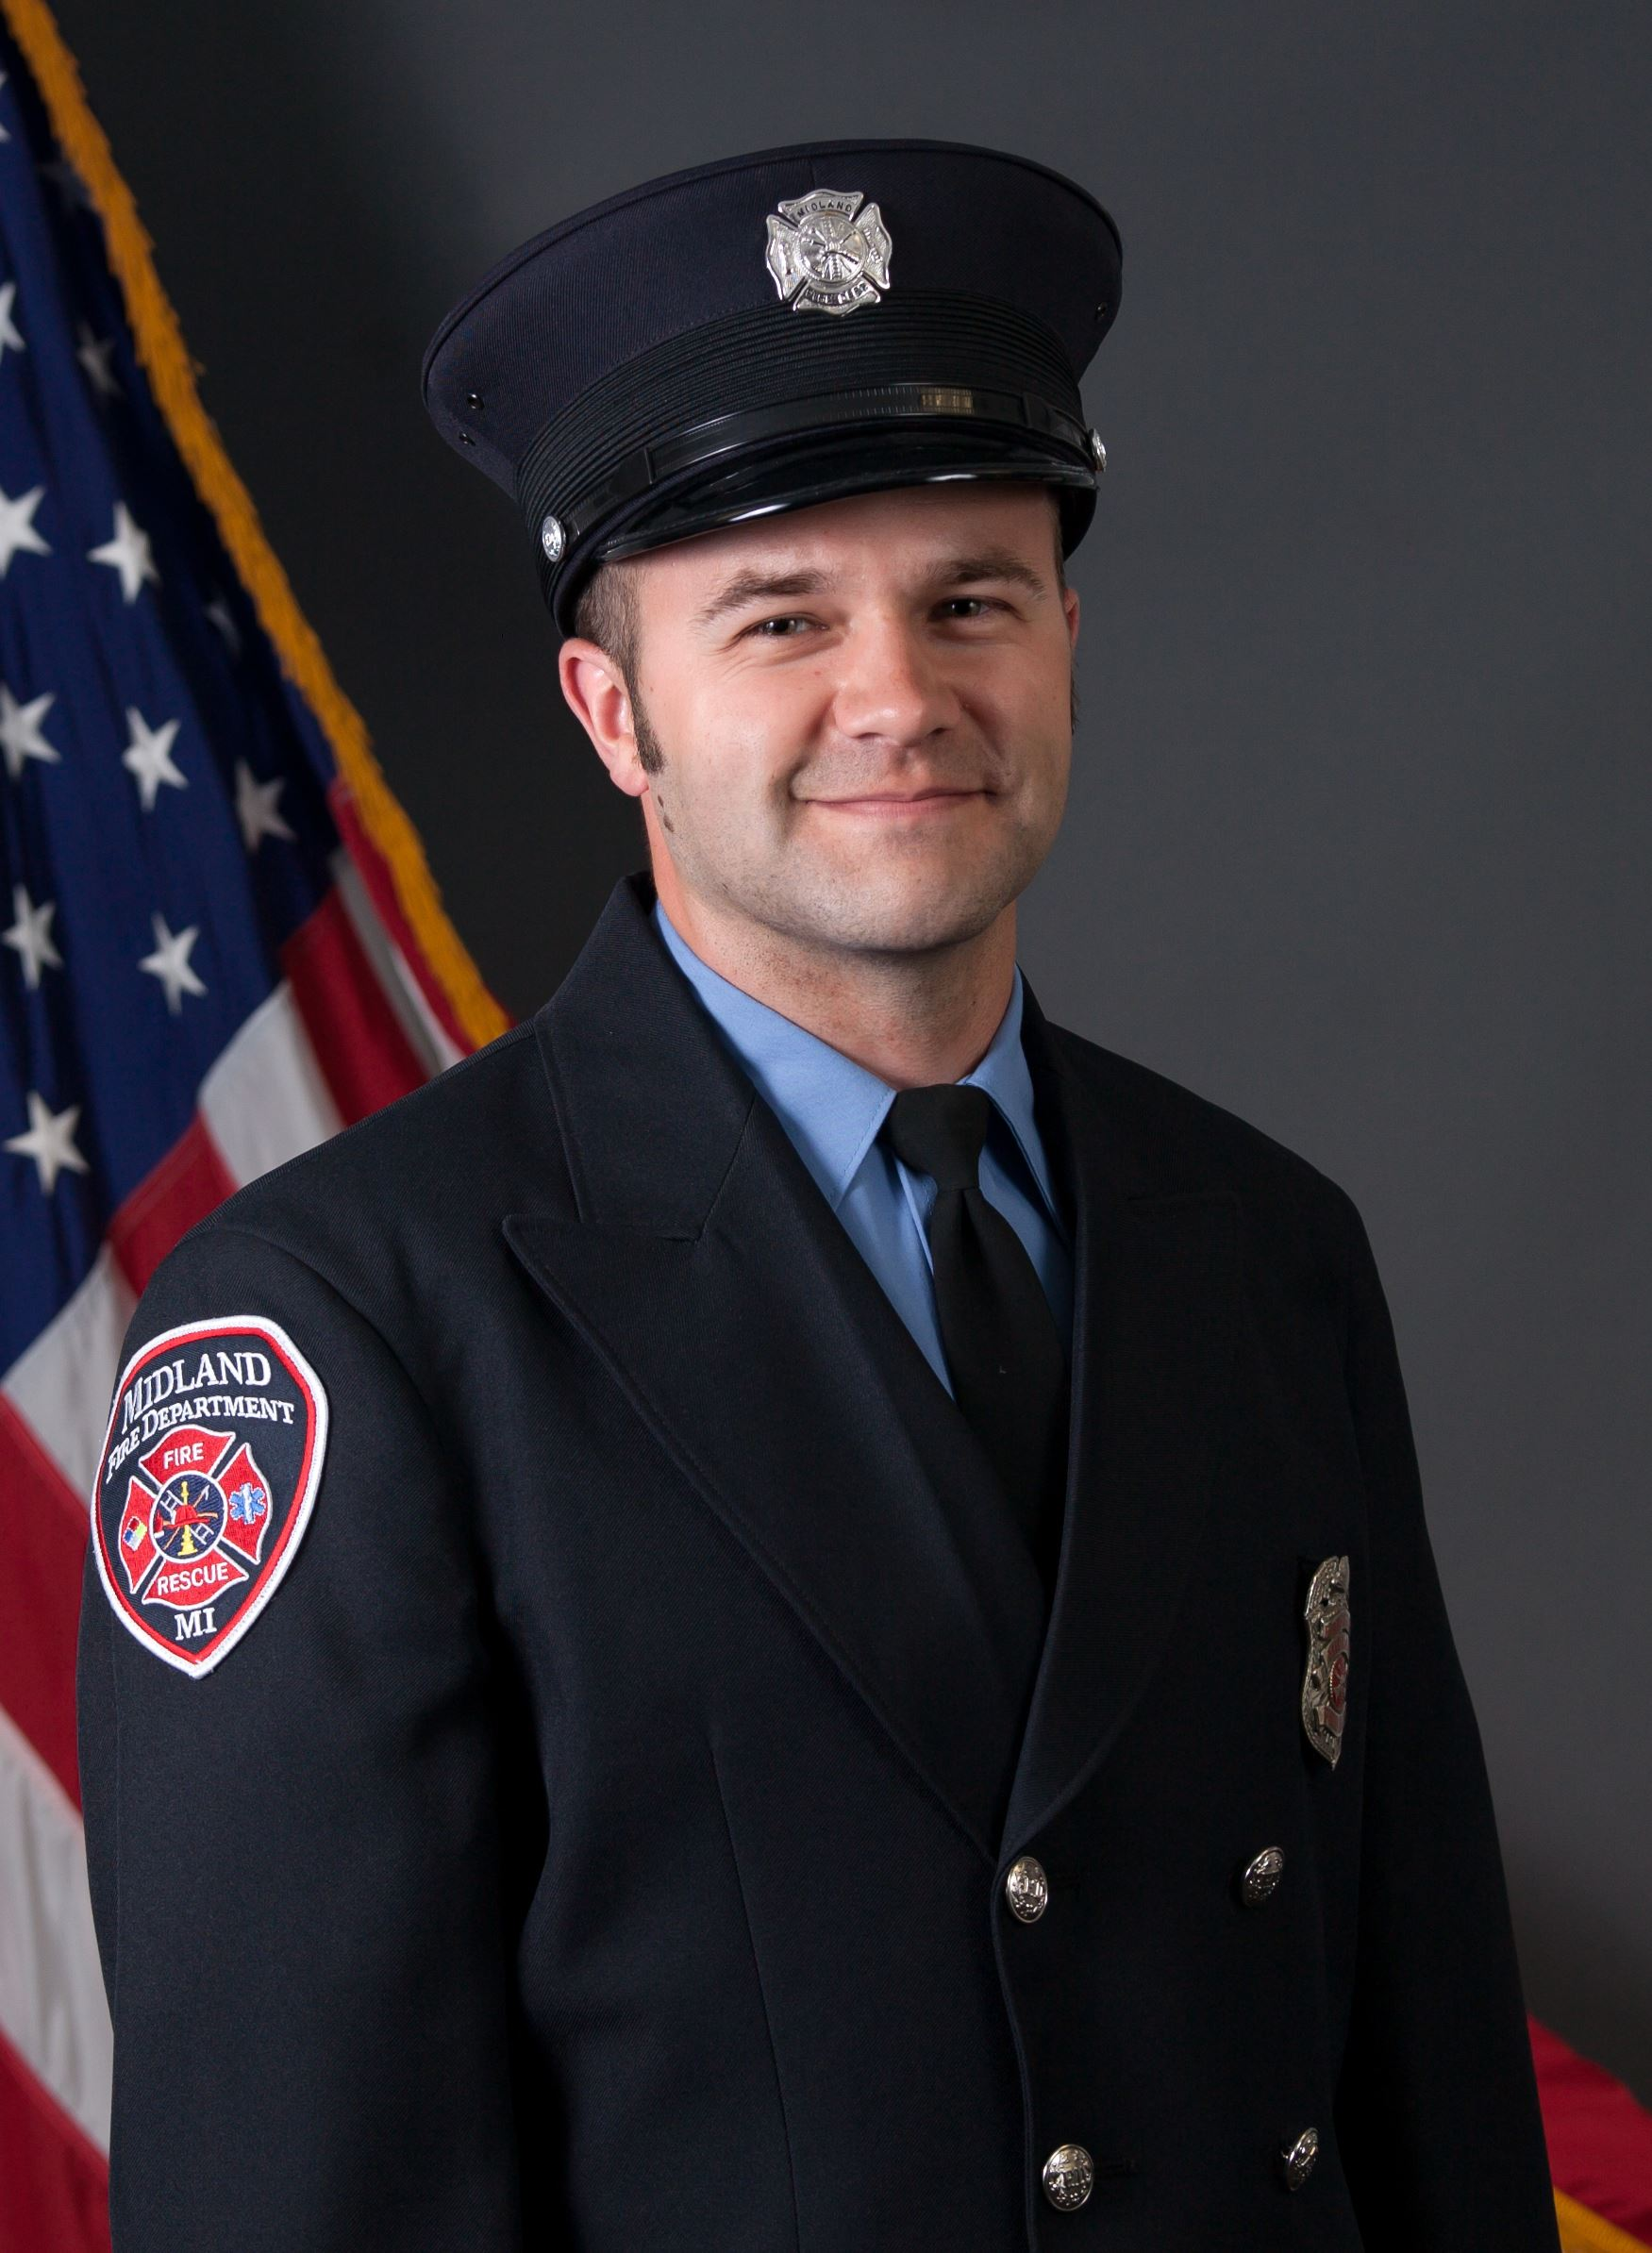 Firefighter Jim Daveluy